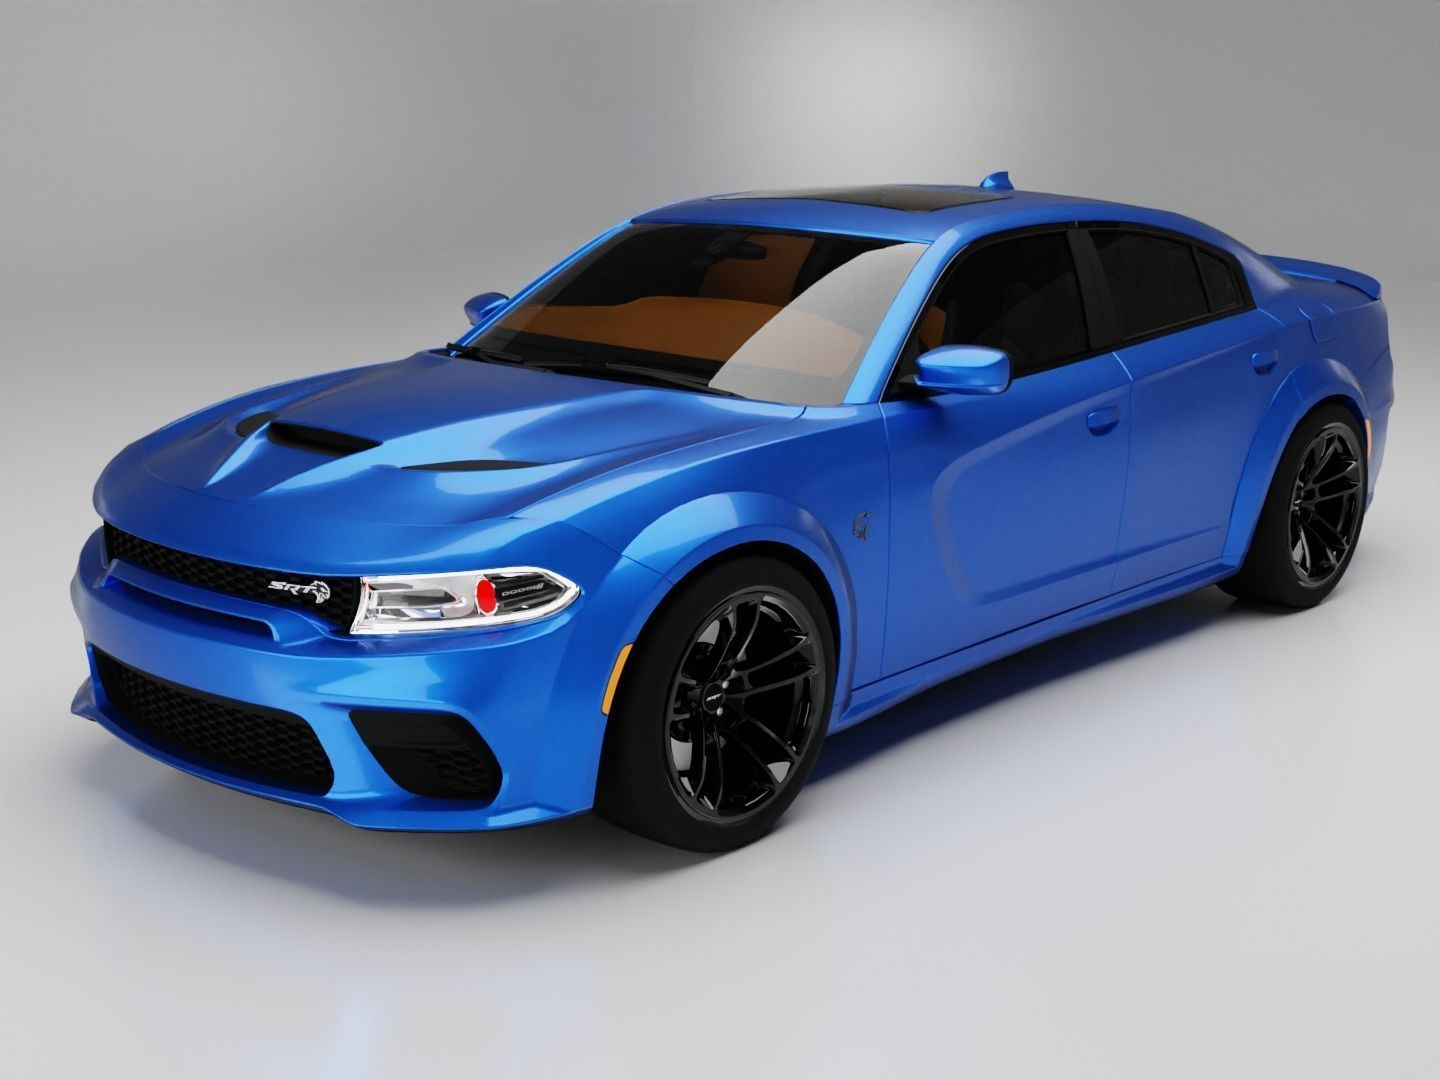 2021 Dodge Charger SRT Hellcat Redeye Widebody 3D model